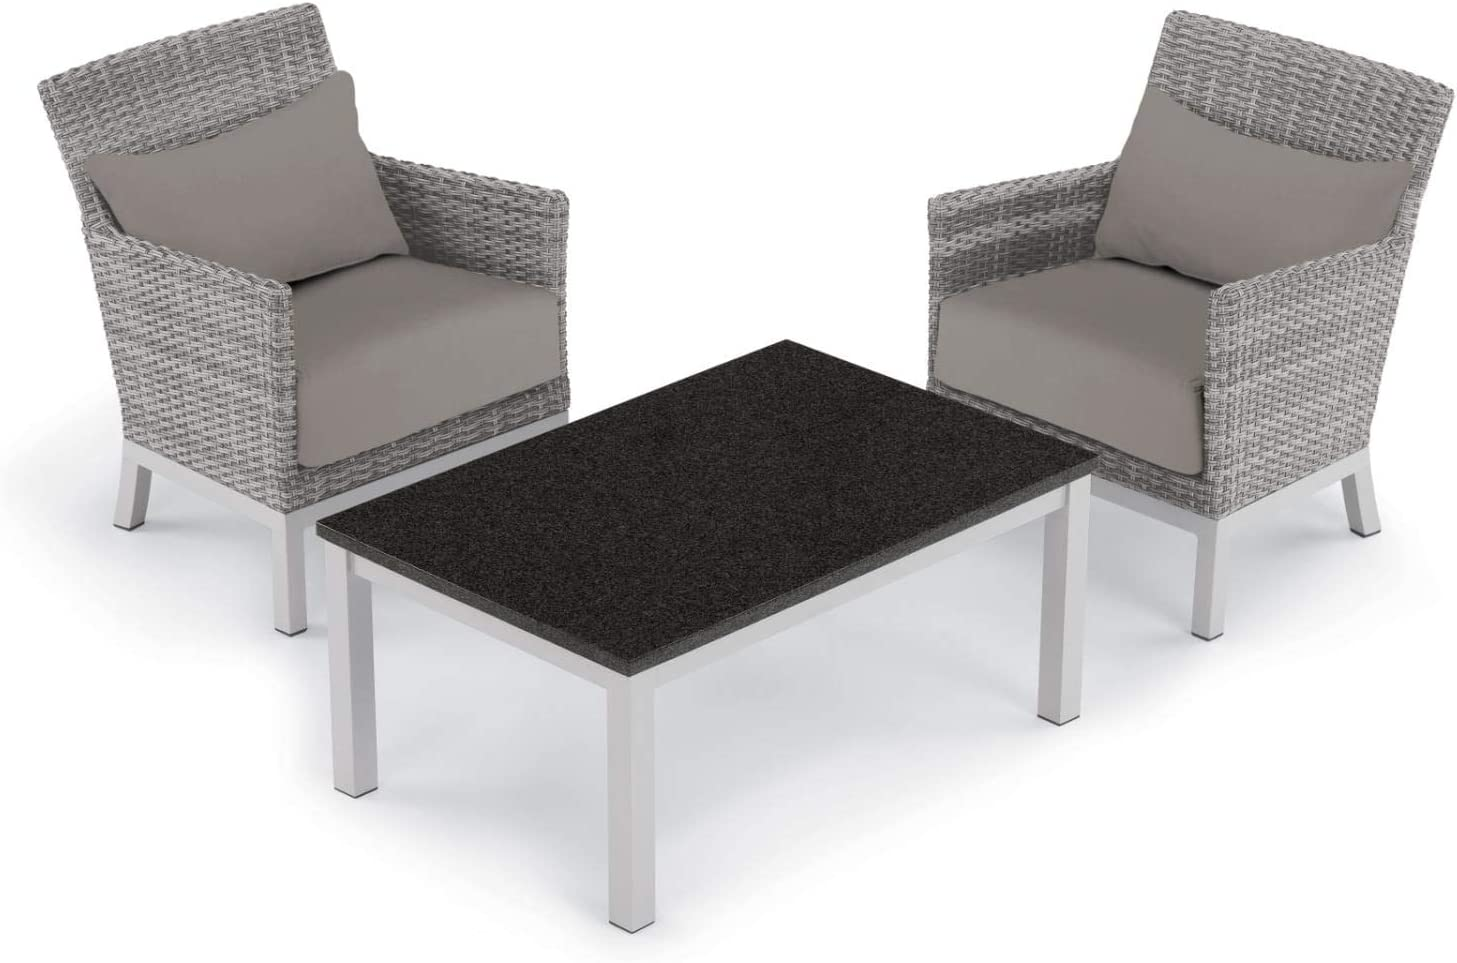 Oxford Garden 5537 Argento & Travira Furniture Set, Powder Coat Flint